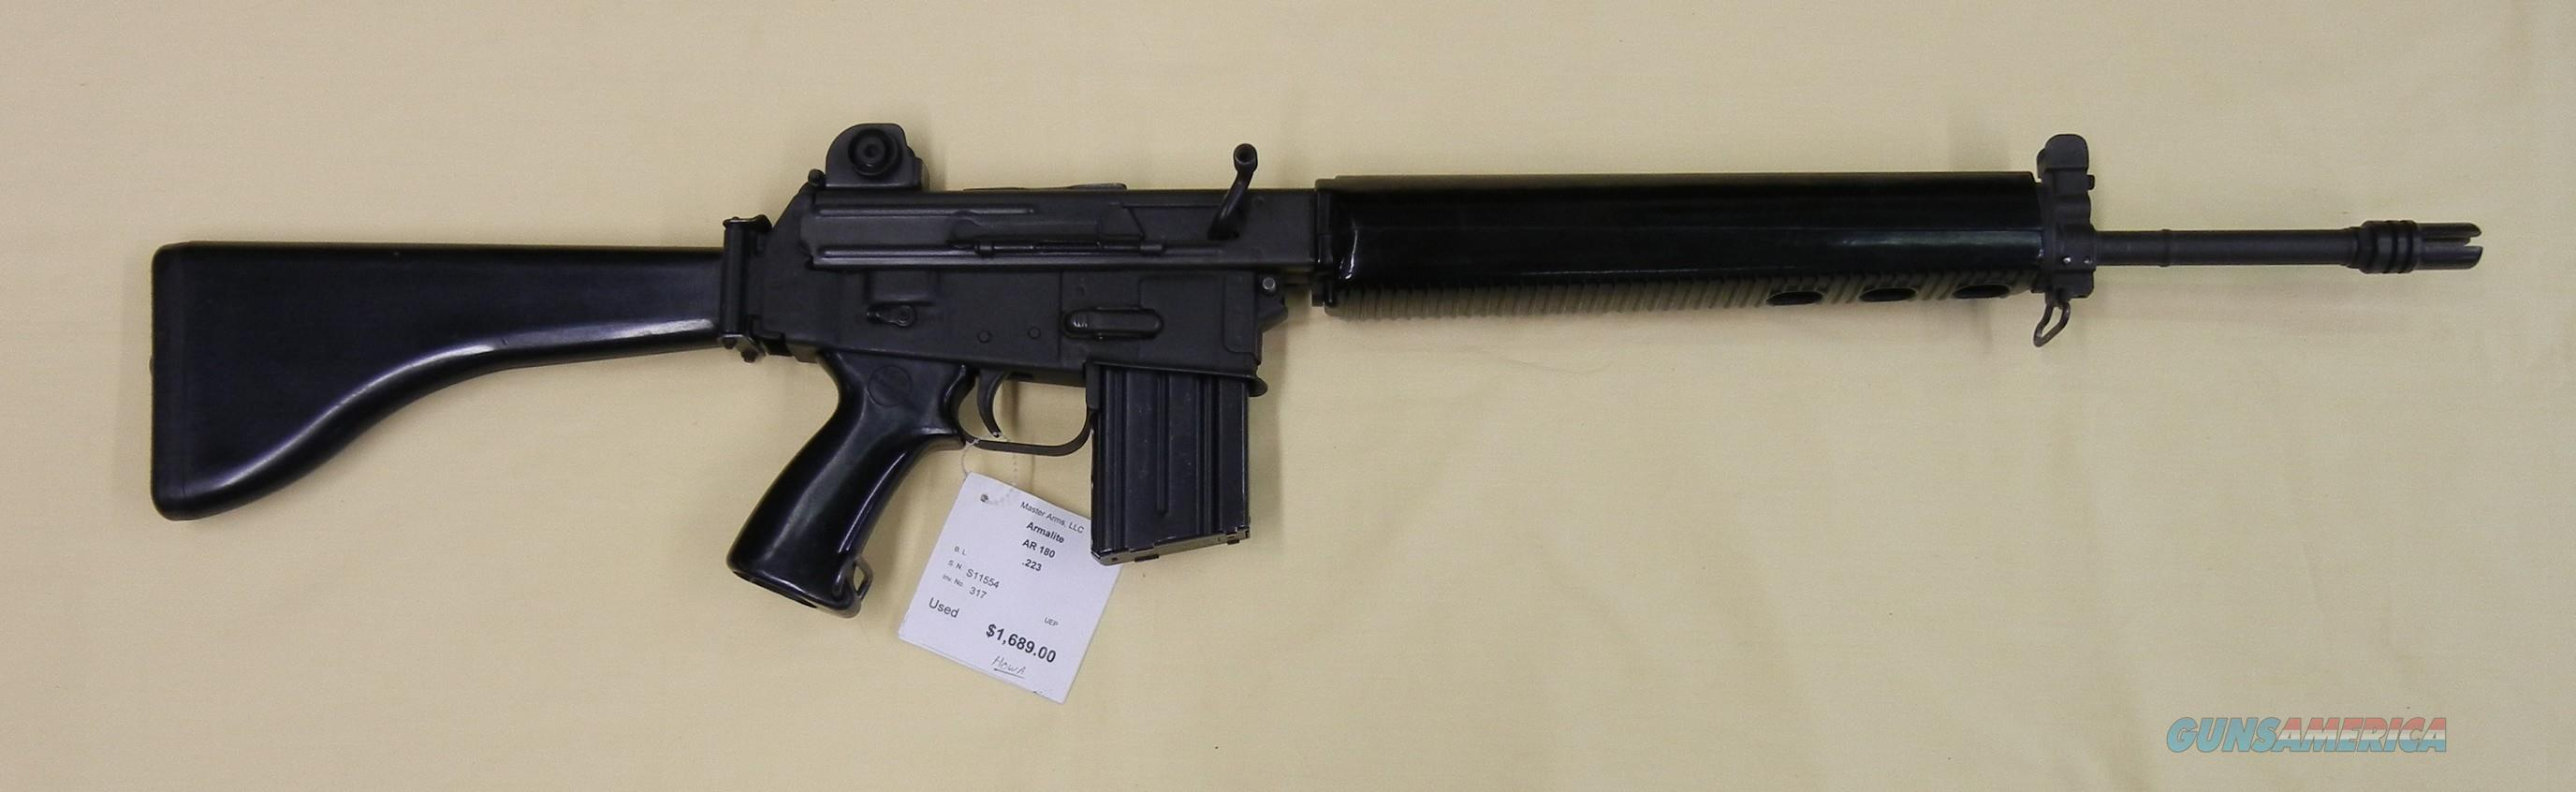 Image result for AR-180